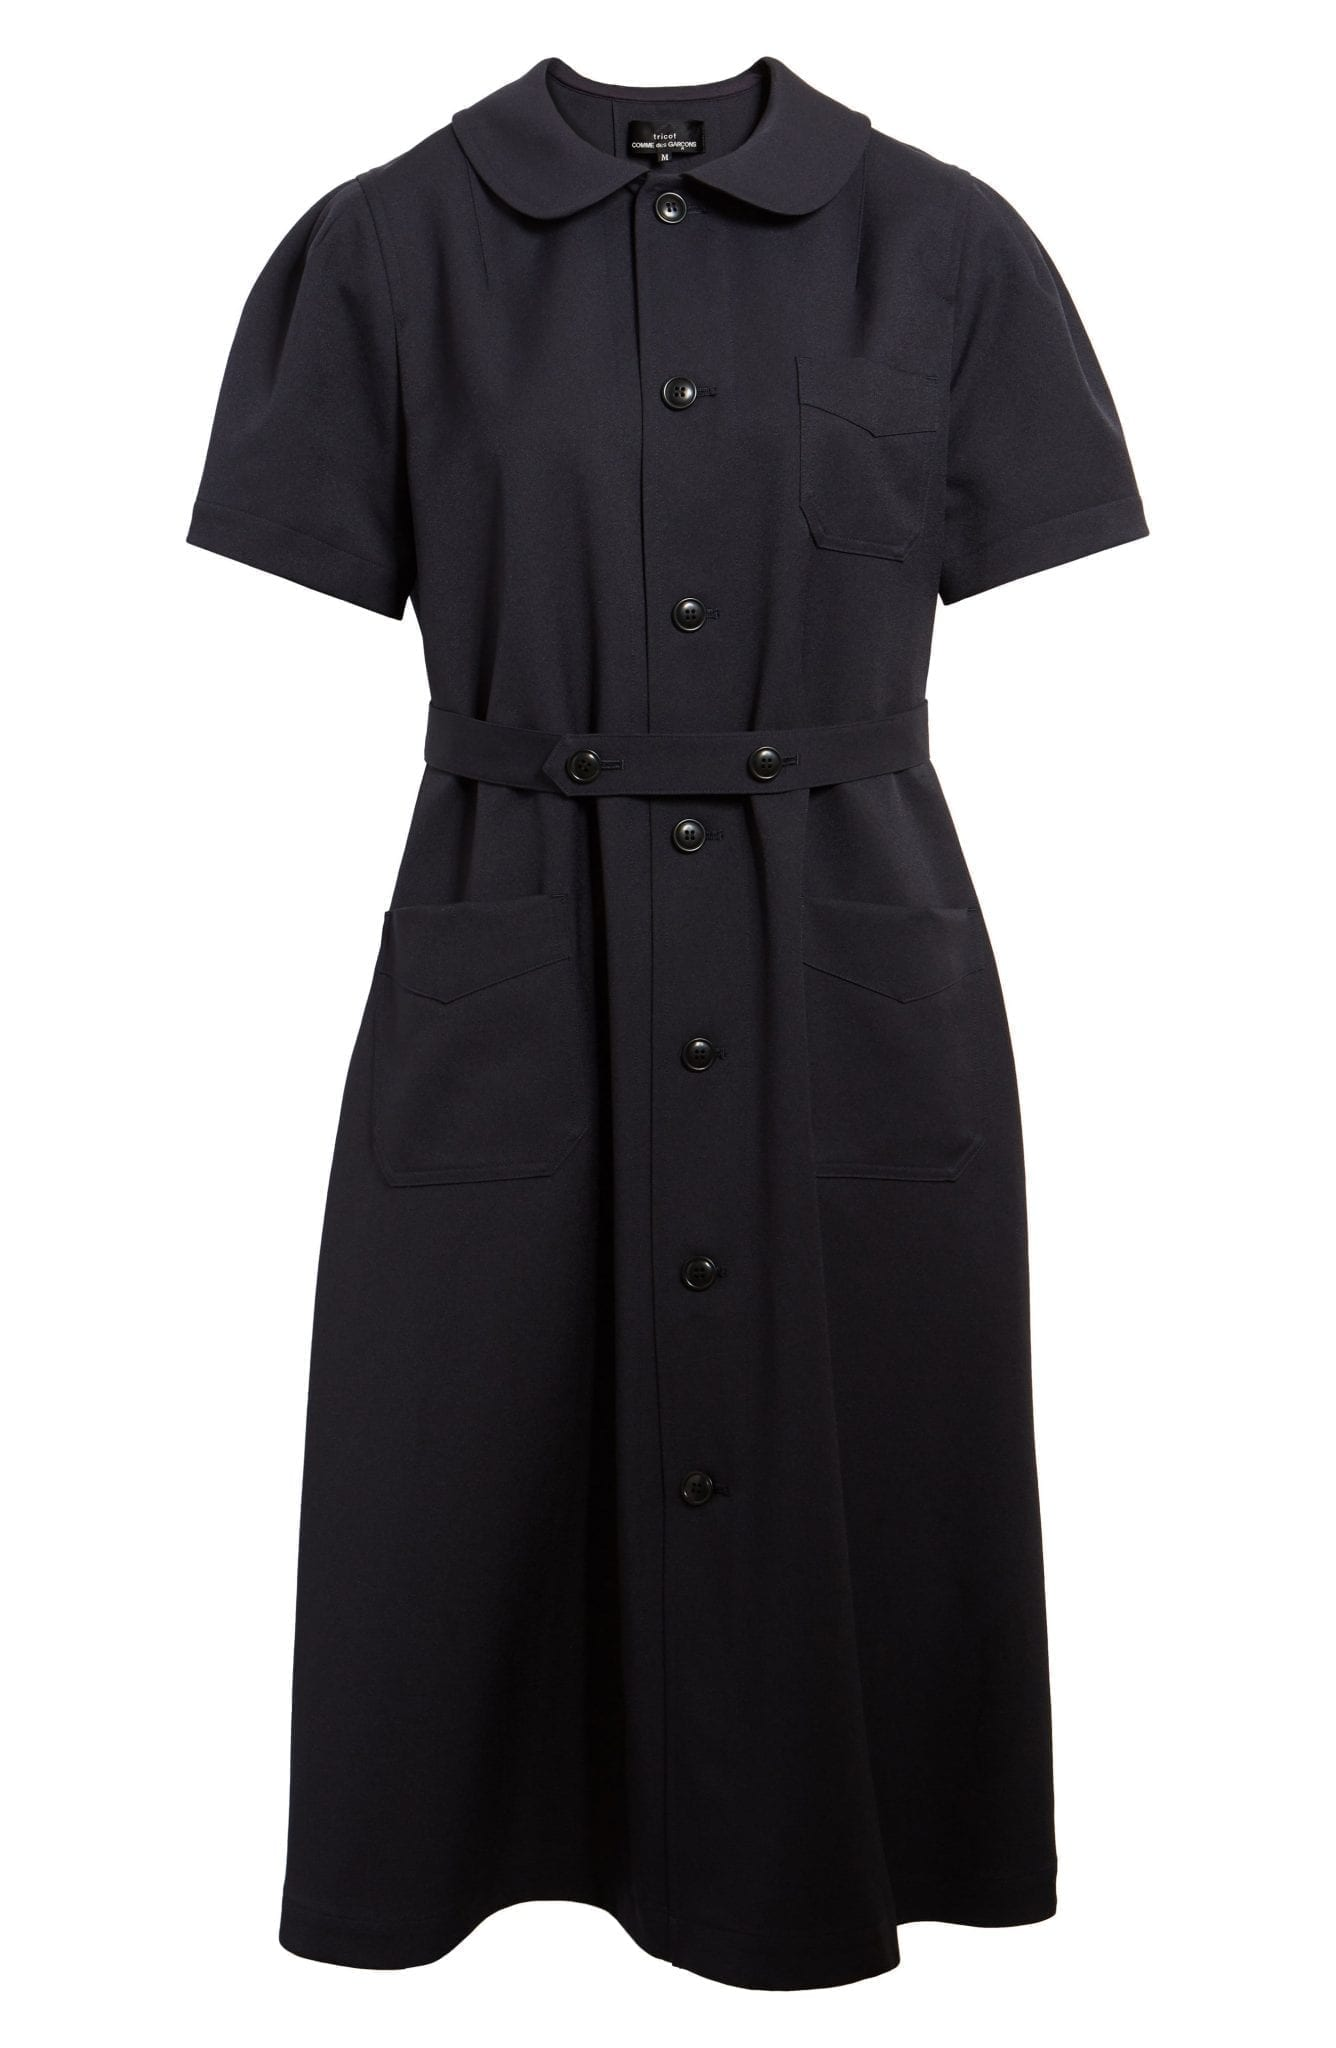 TRICOT COMME DES GARÇONS Peter Pan Collar Midi Shirt Dress